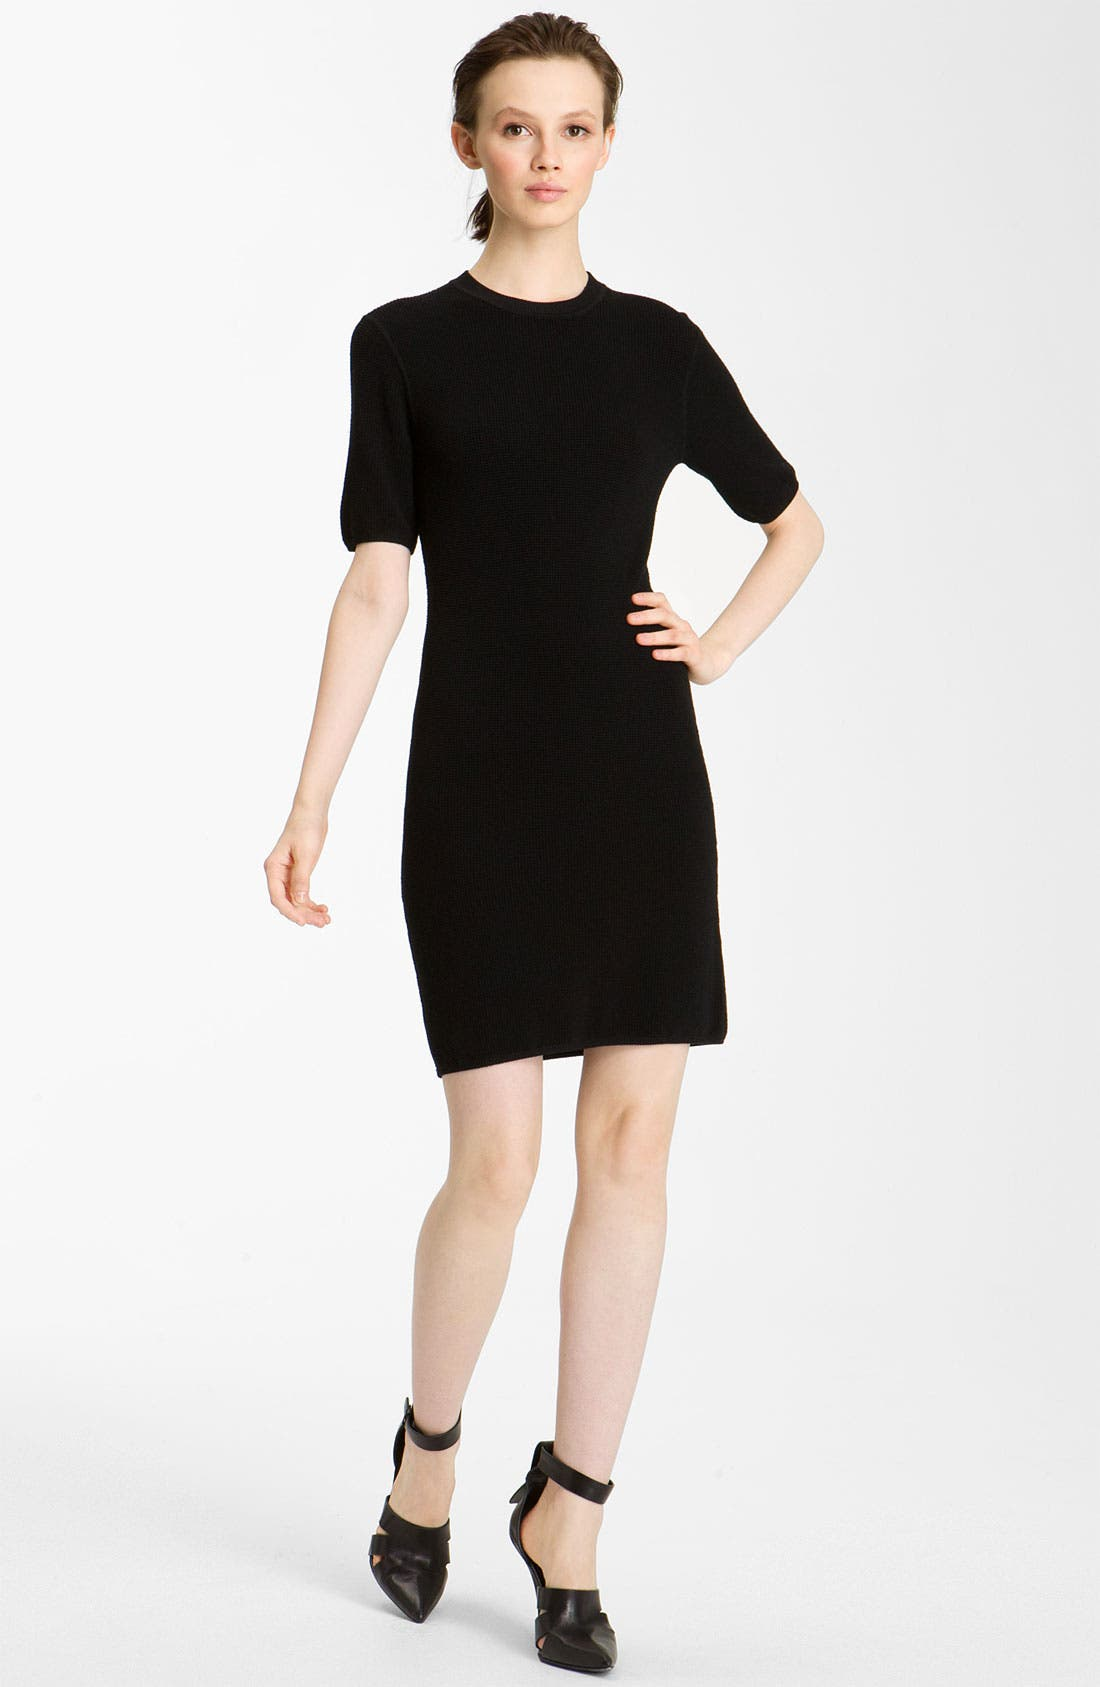 Alternate Image 1 Selected - T by Alexander Wang Thermal Dress